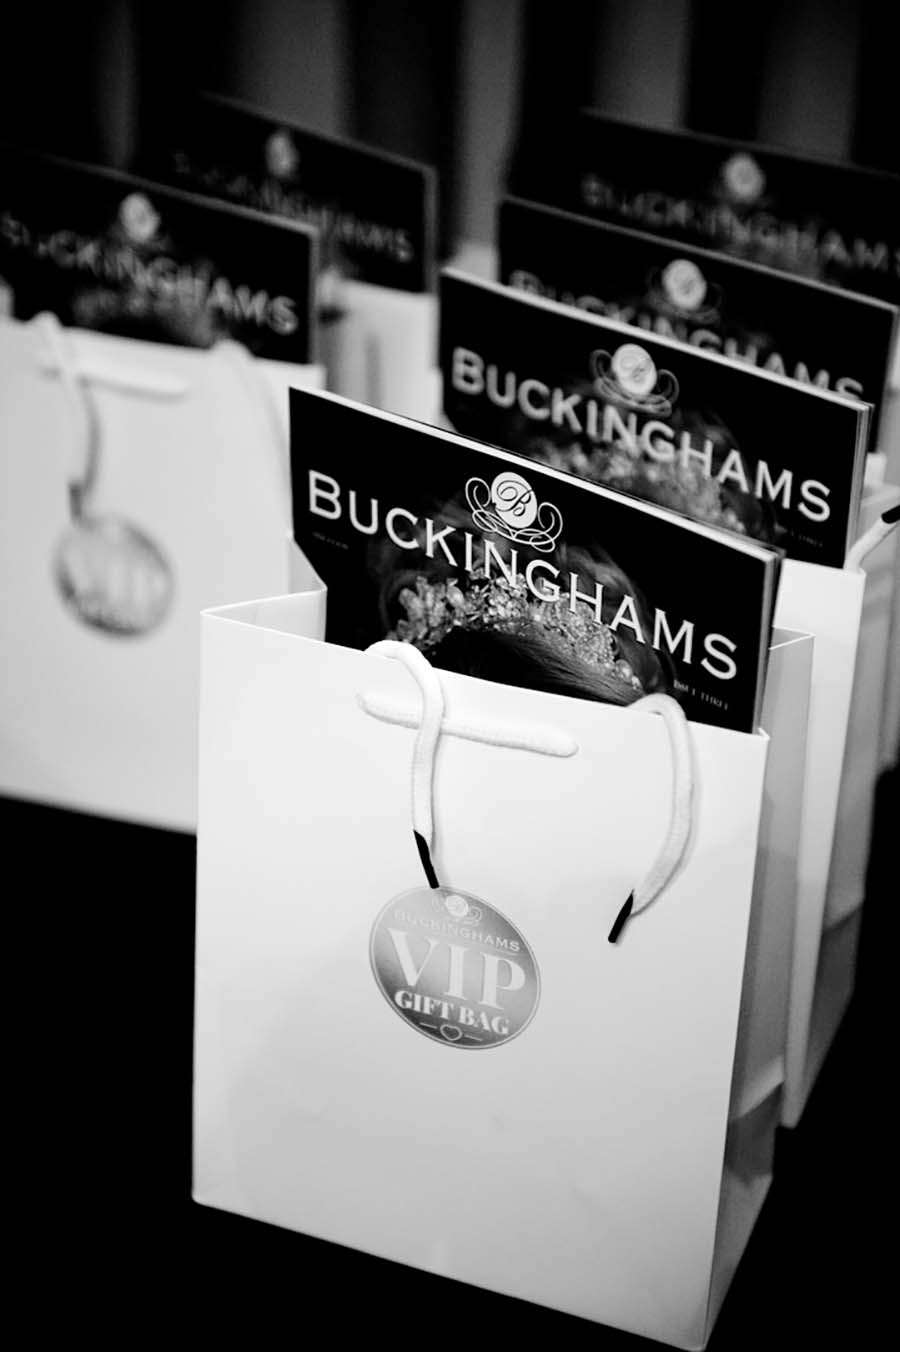 Buckinghams-at-belvoir-castle-wedding-fair-rachael-connerton-photography-10